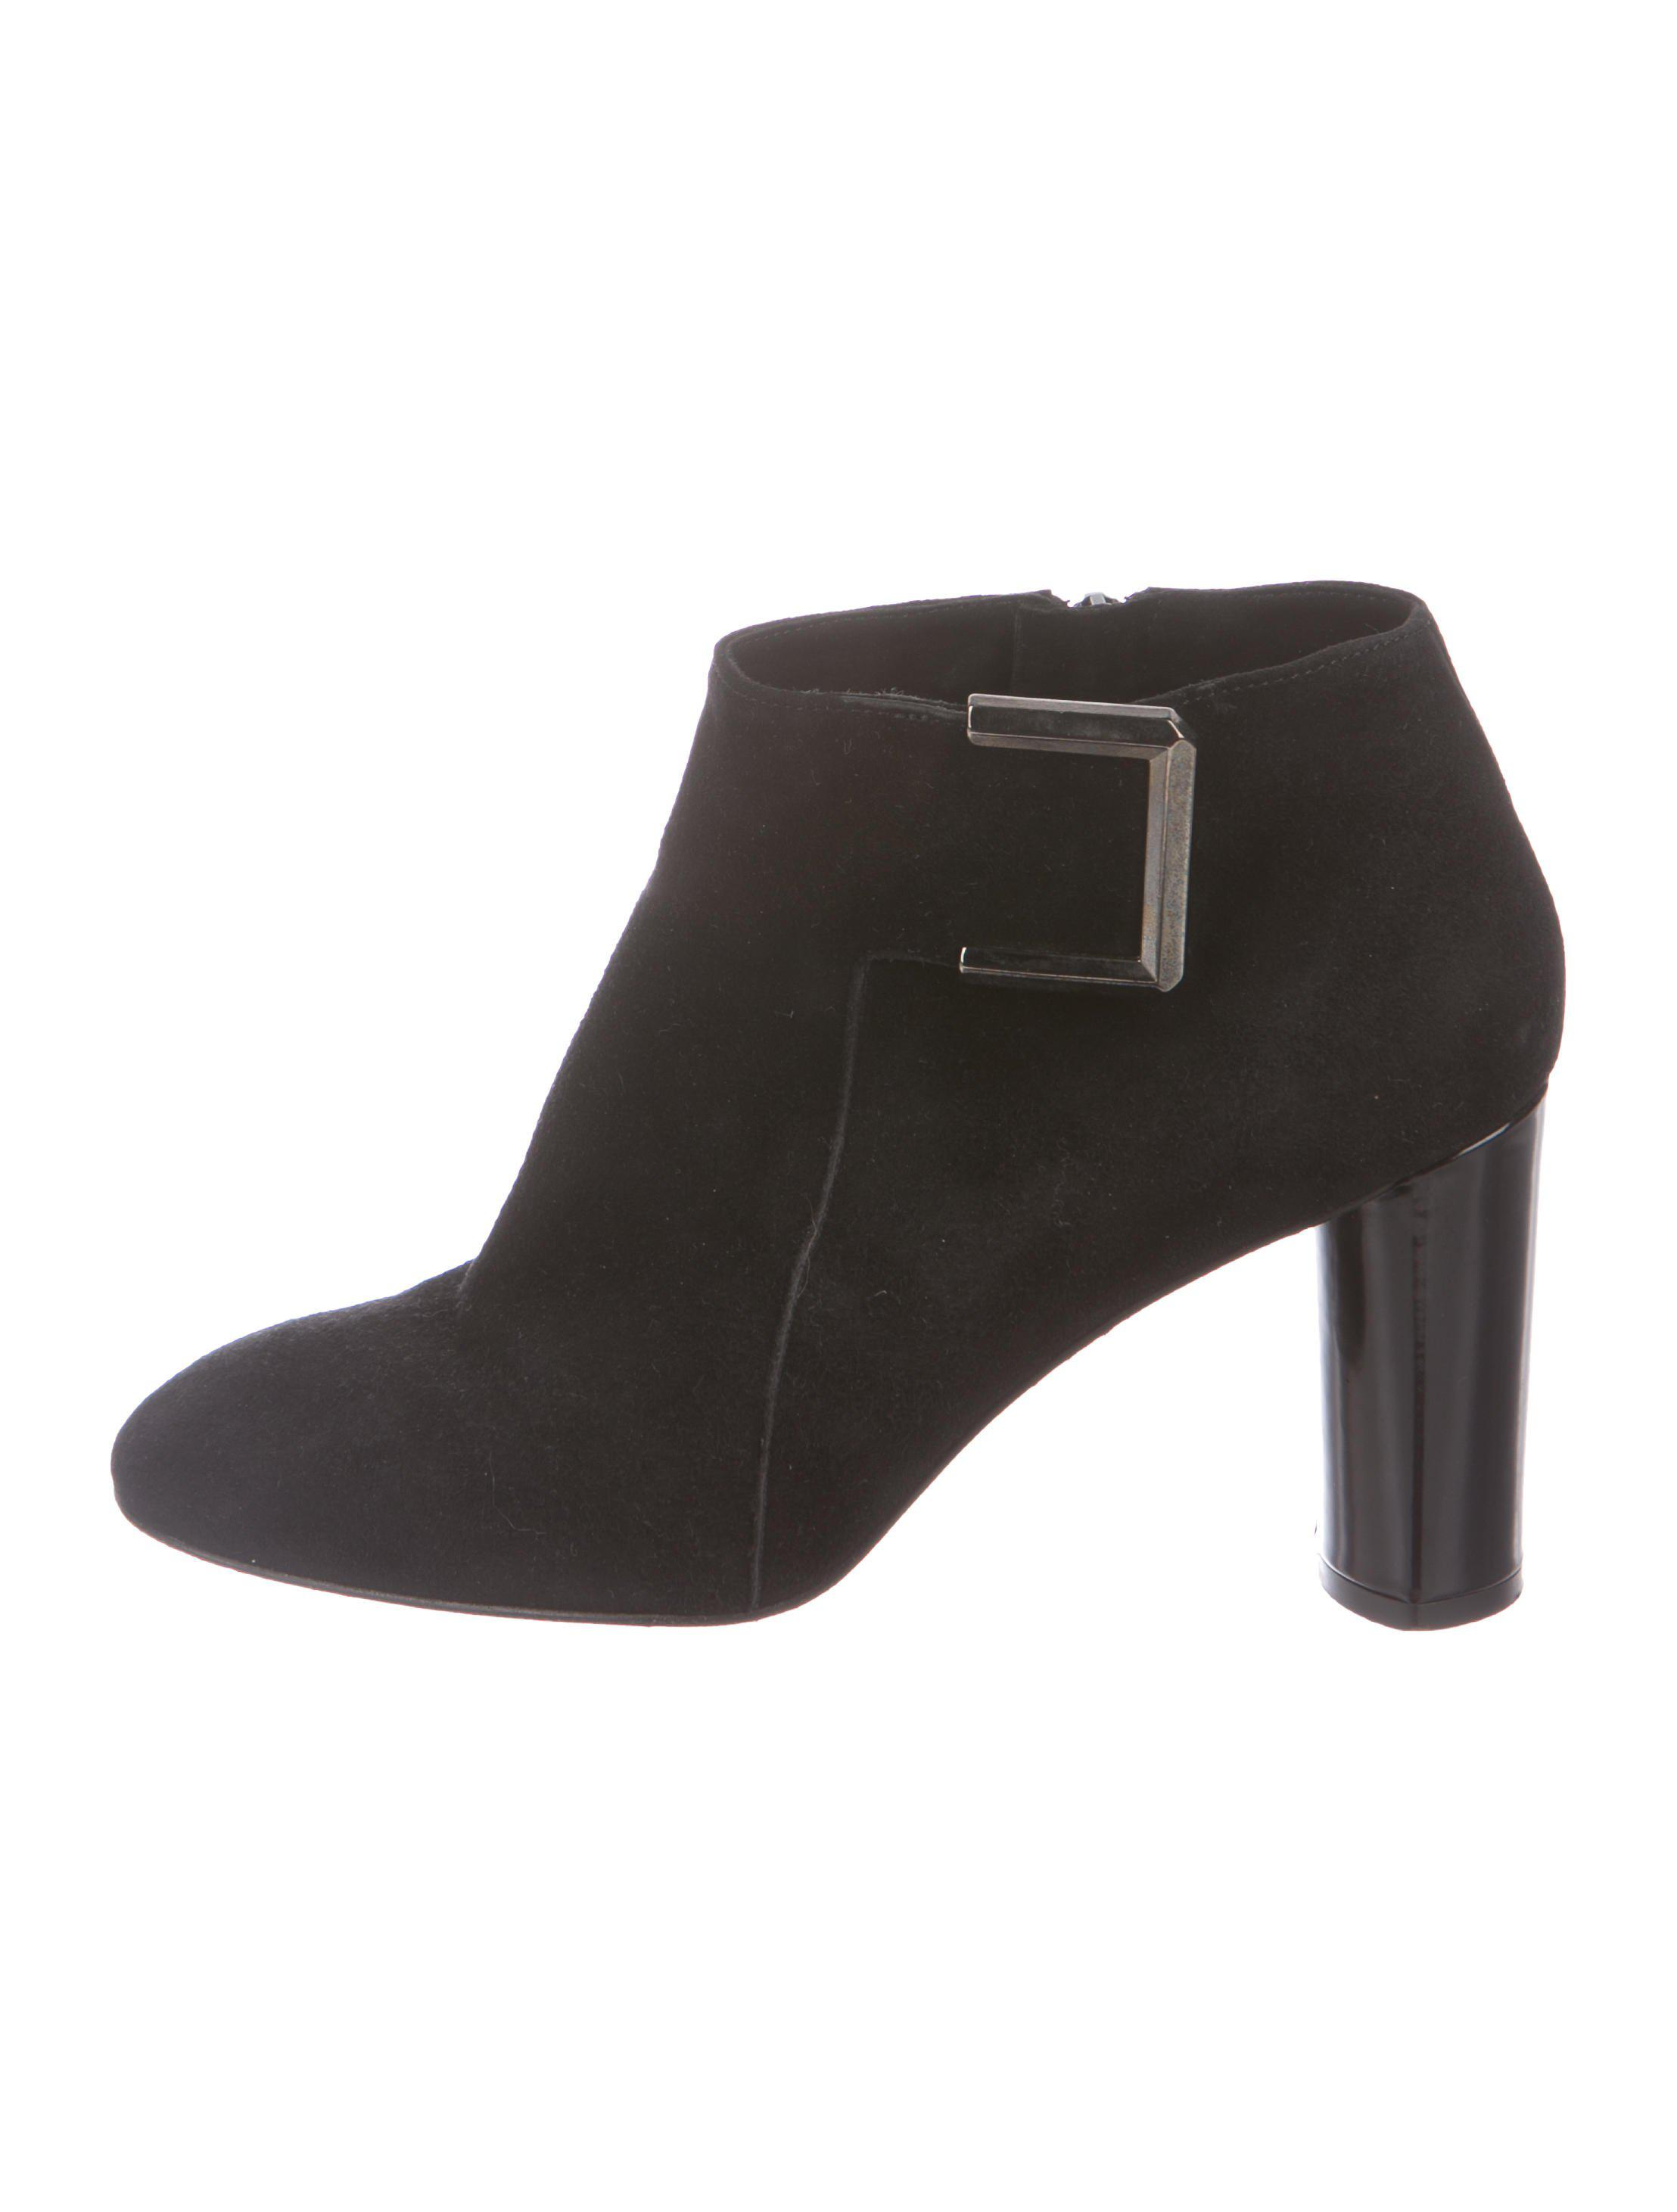 Robert Clergerie Clergerie Paris Suede Round-Toe Booties buy cheap limited edition cheap sale free shipping sale footlocker finishline cheap sale 2015 n2hkD85IK